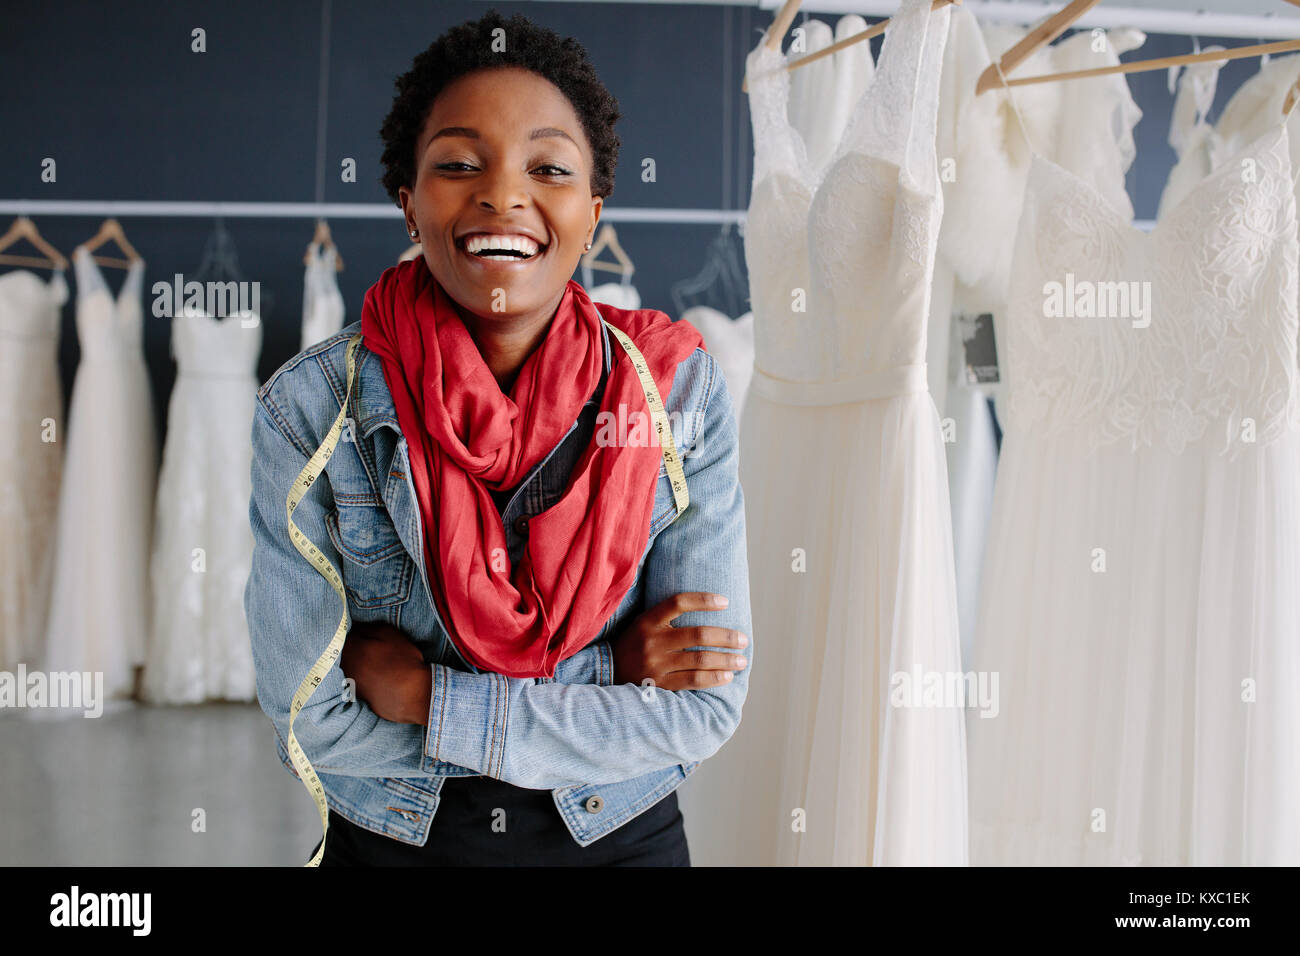 Portrait of african female bridal store owner standing with her arms crossed and smiling. Woman tailor standing - Stock Image